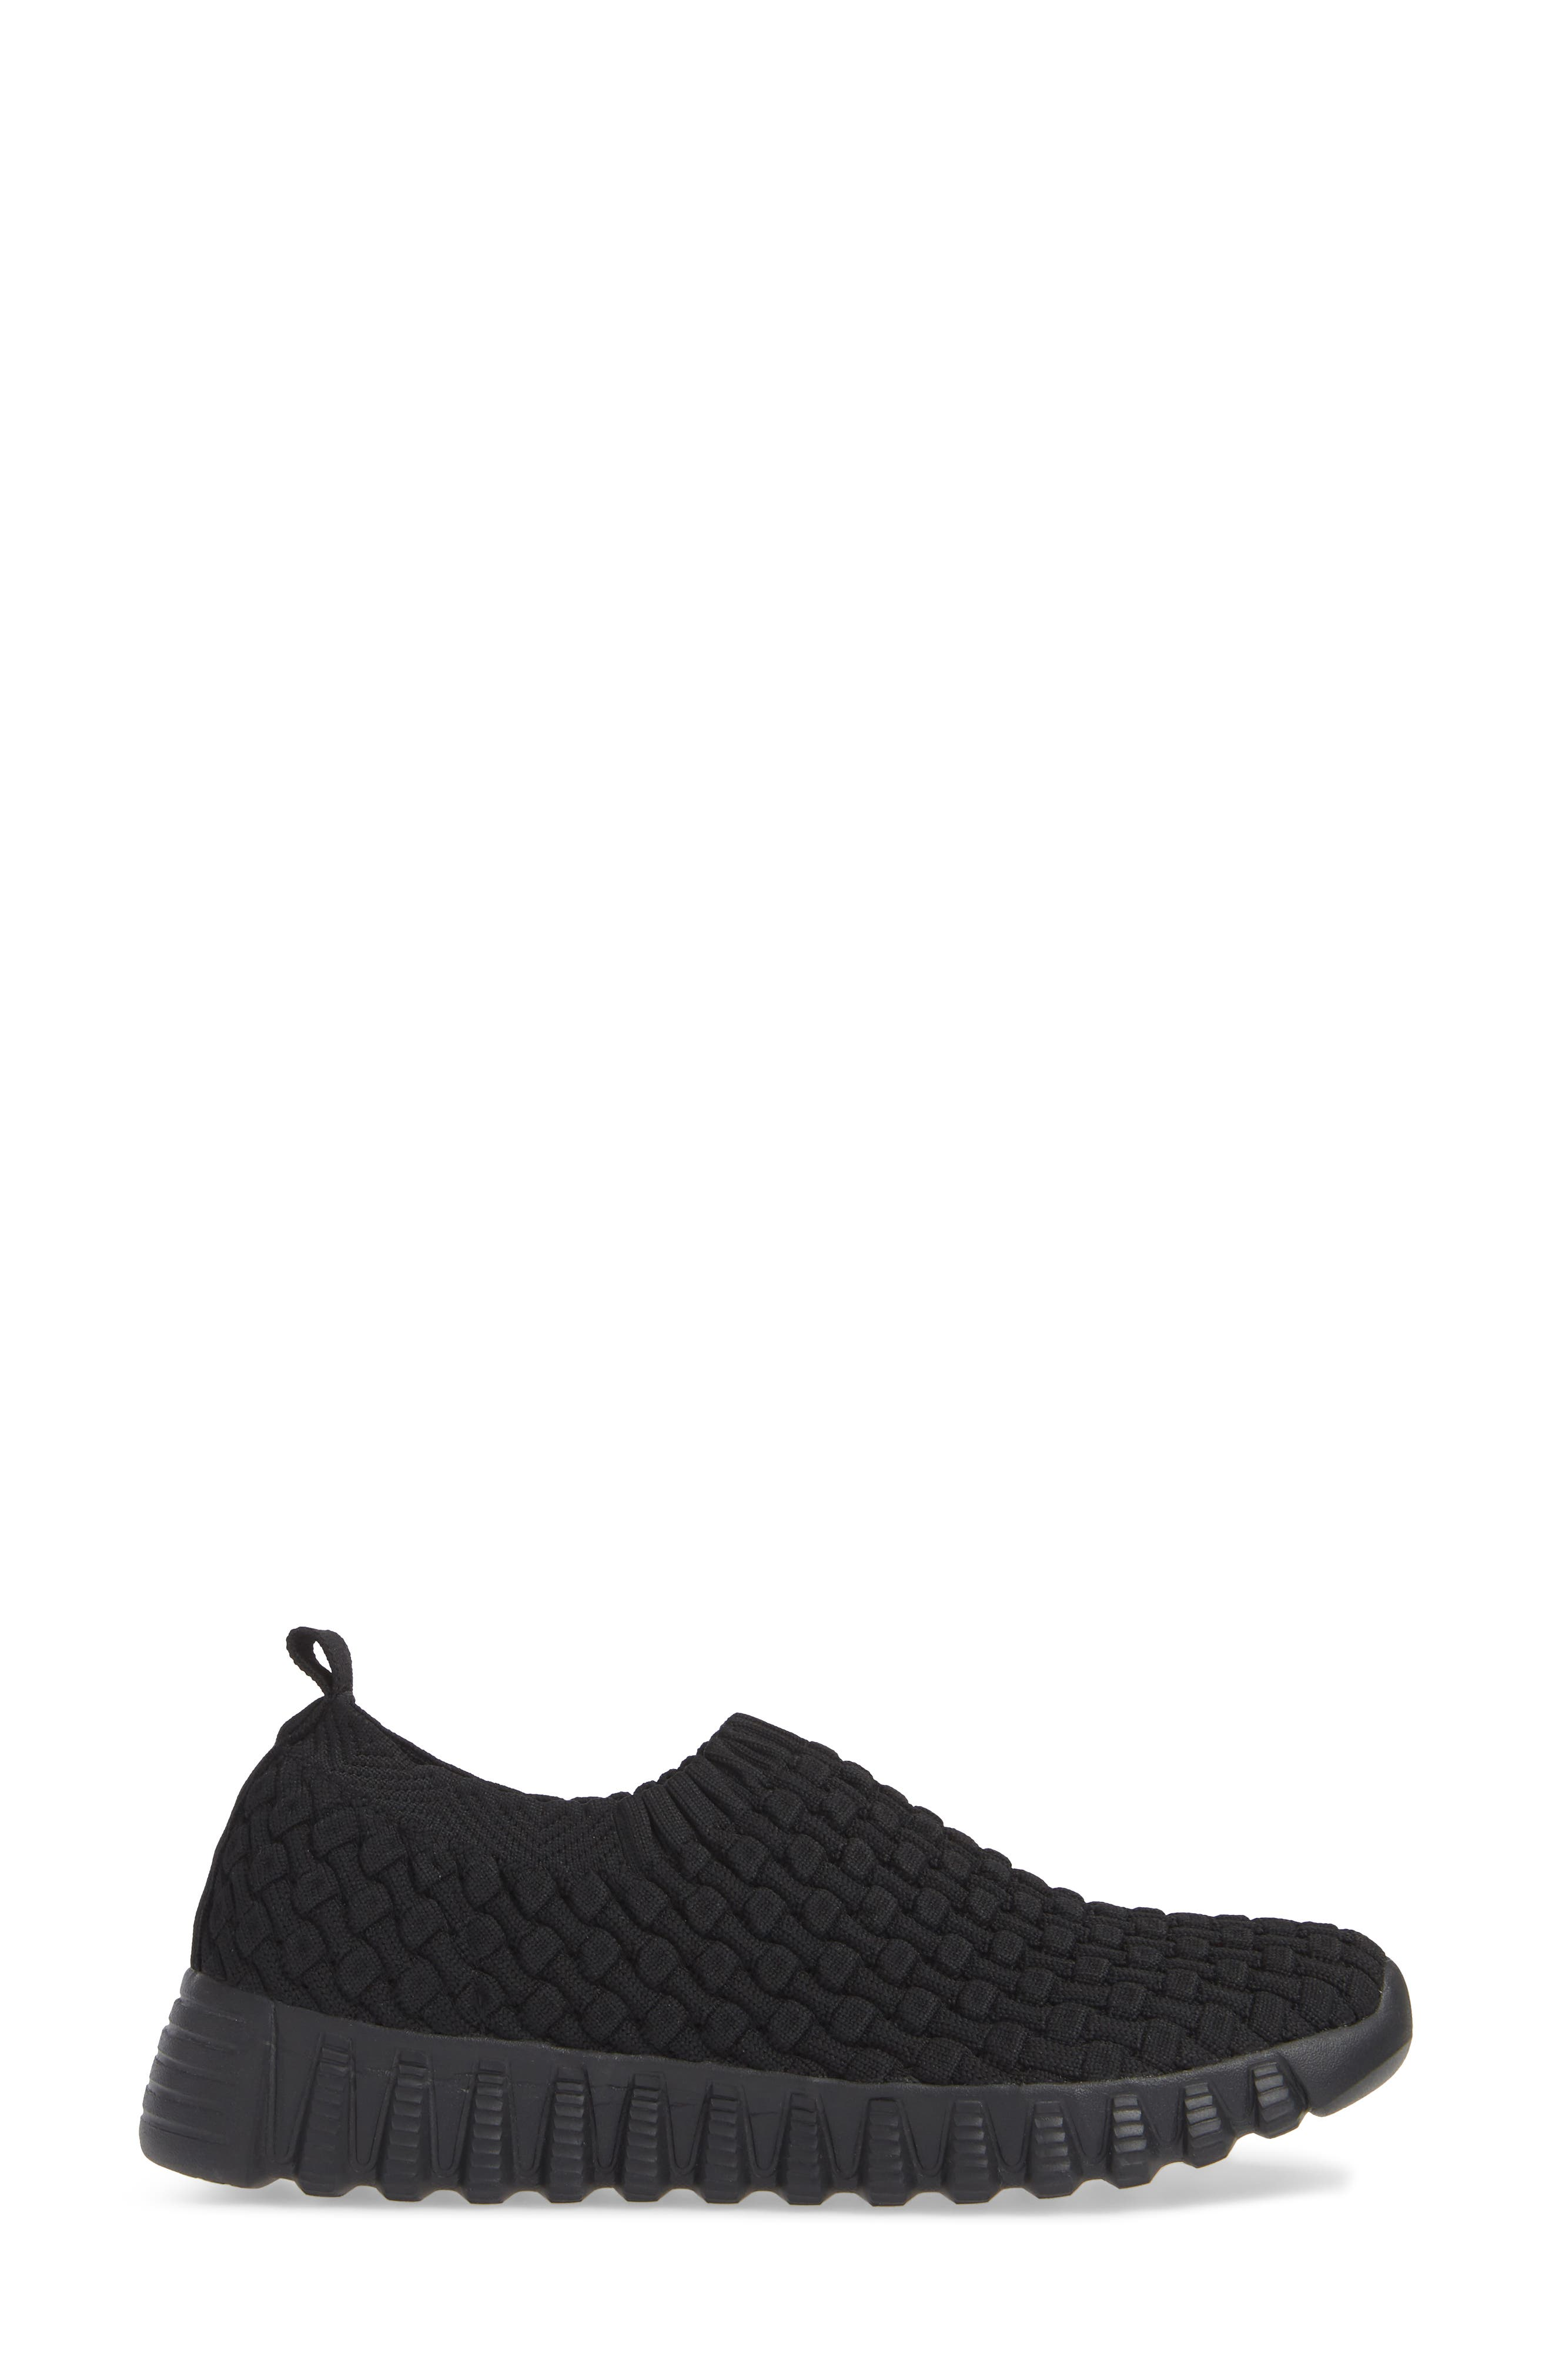 Tender Slip-On Sneaker,                             Alternate thumbnail 3, color,                             BLACK FABRIC